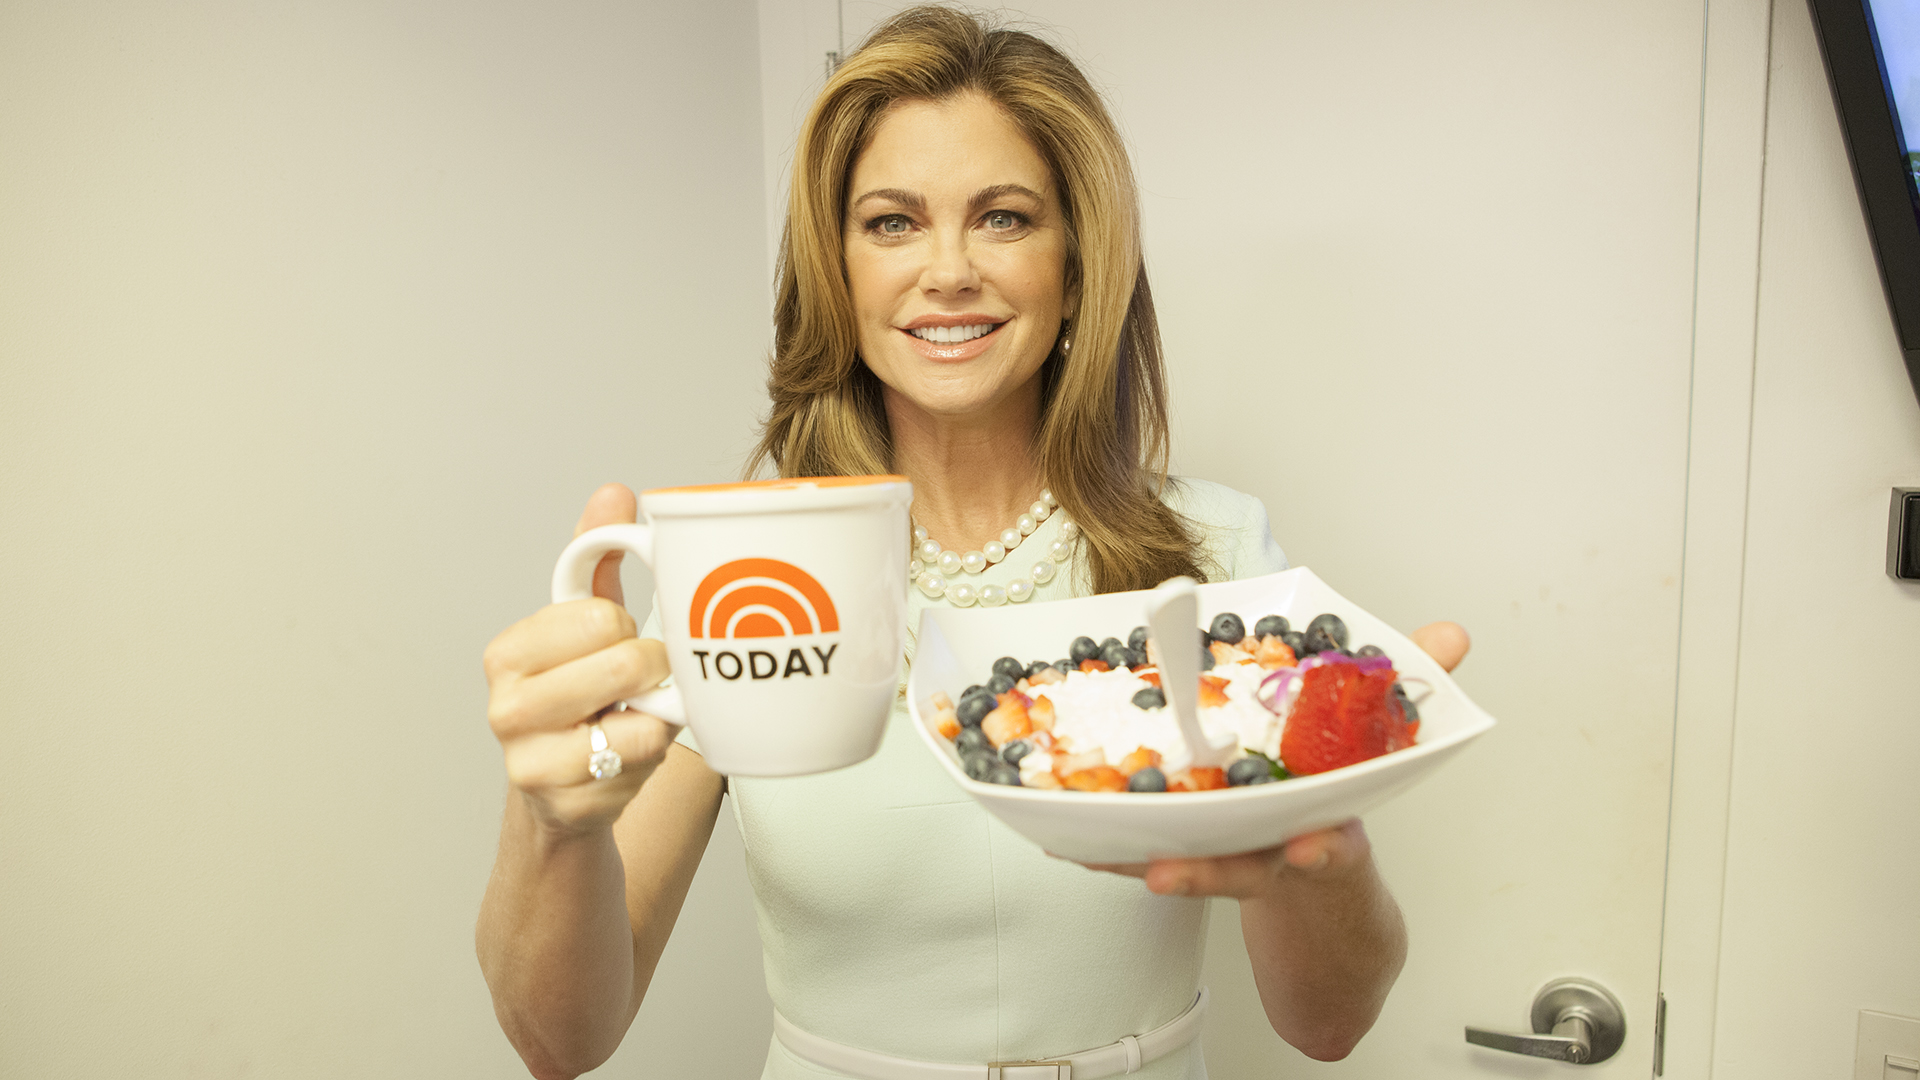 Kathy Ireland S Breakfast And What She Eats When She S